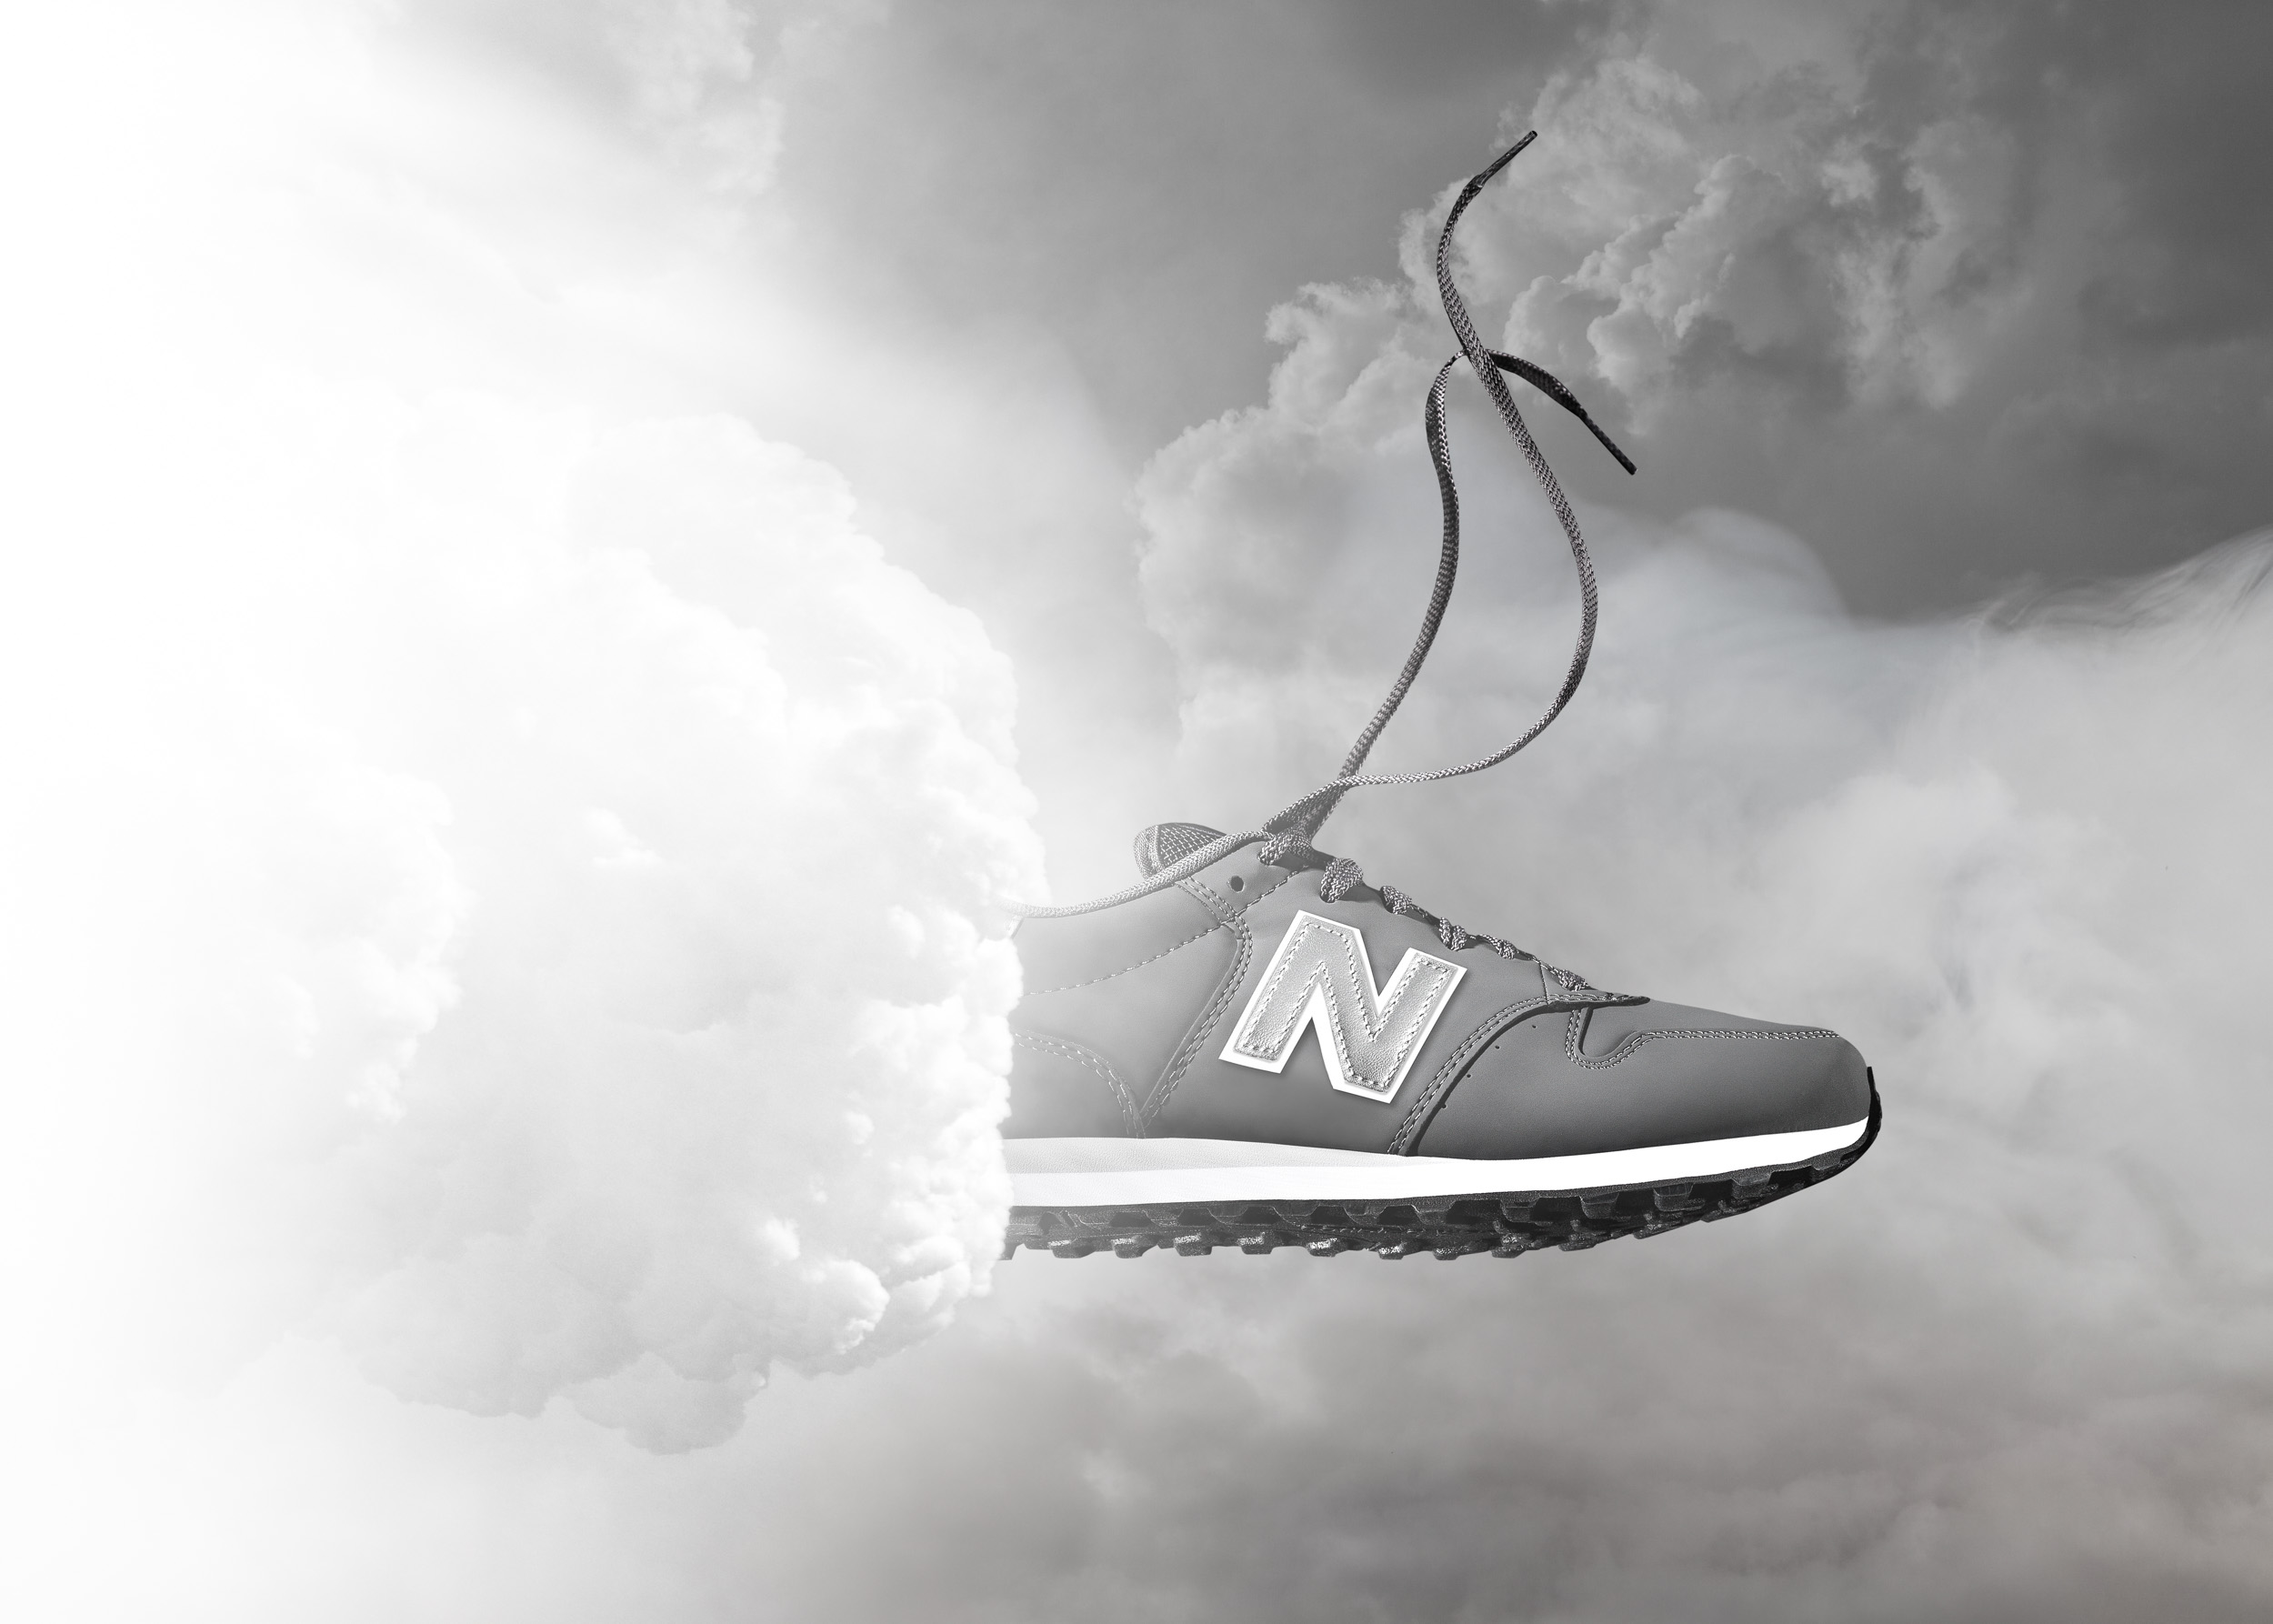 Neal Byrne Photography-New Balance Shoe.jpg